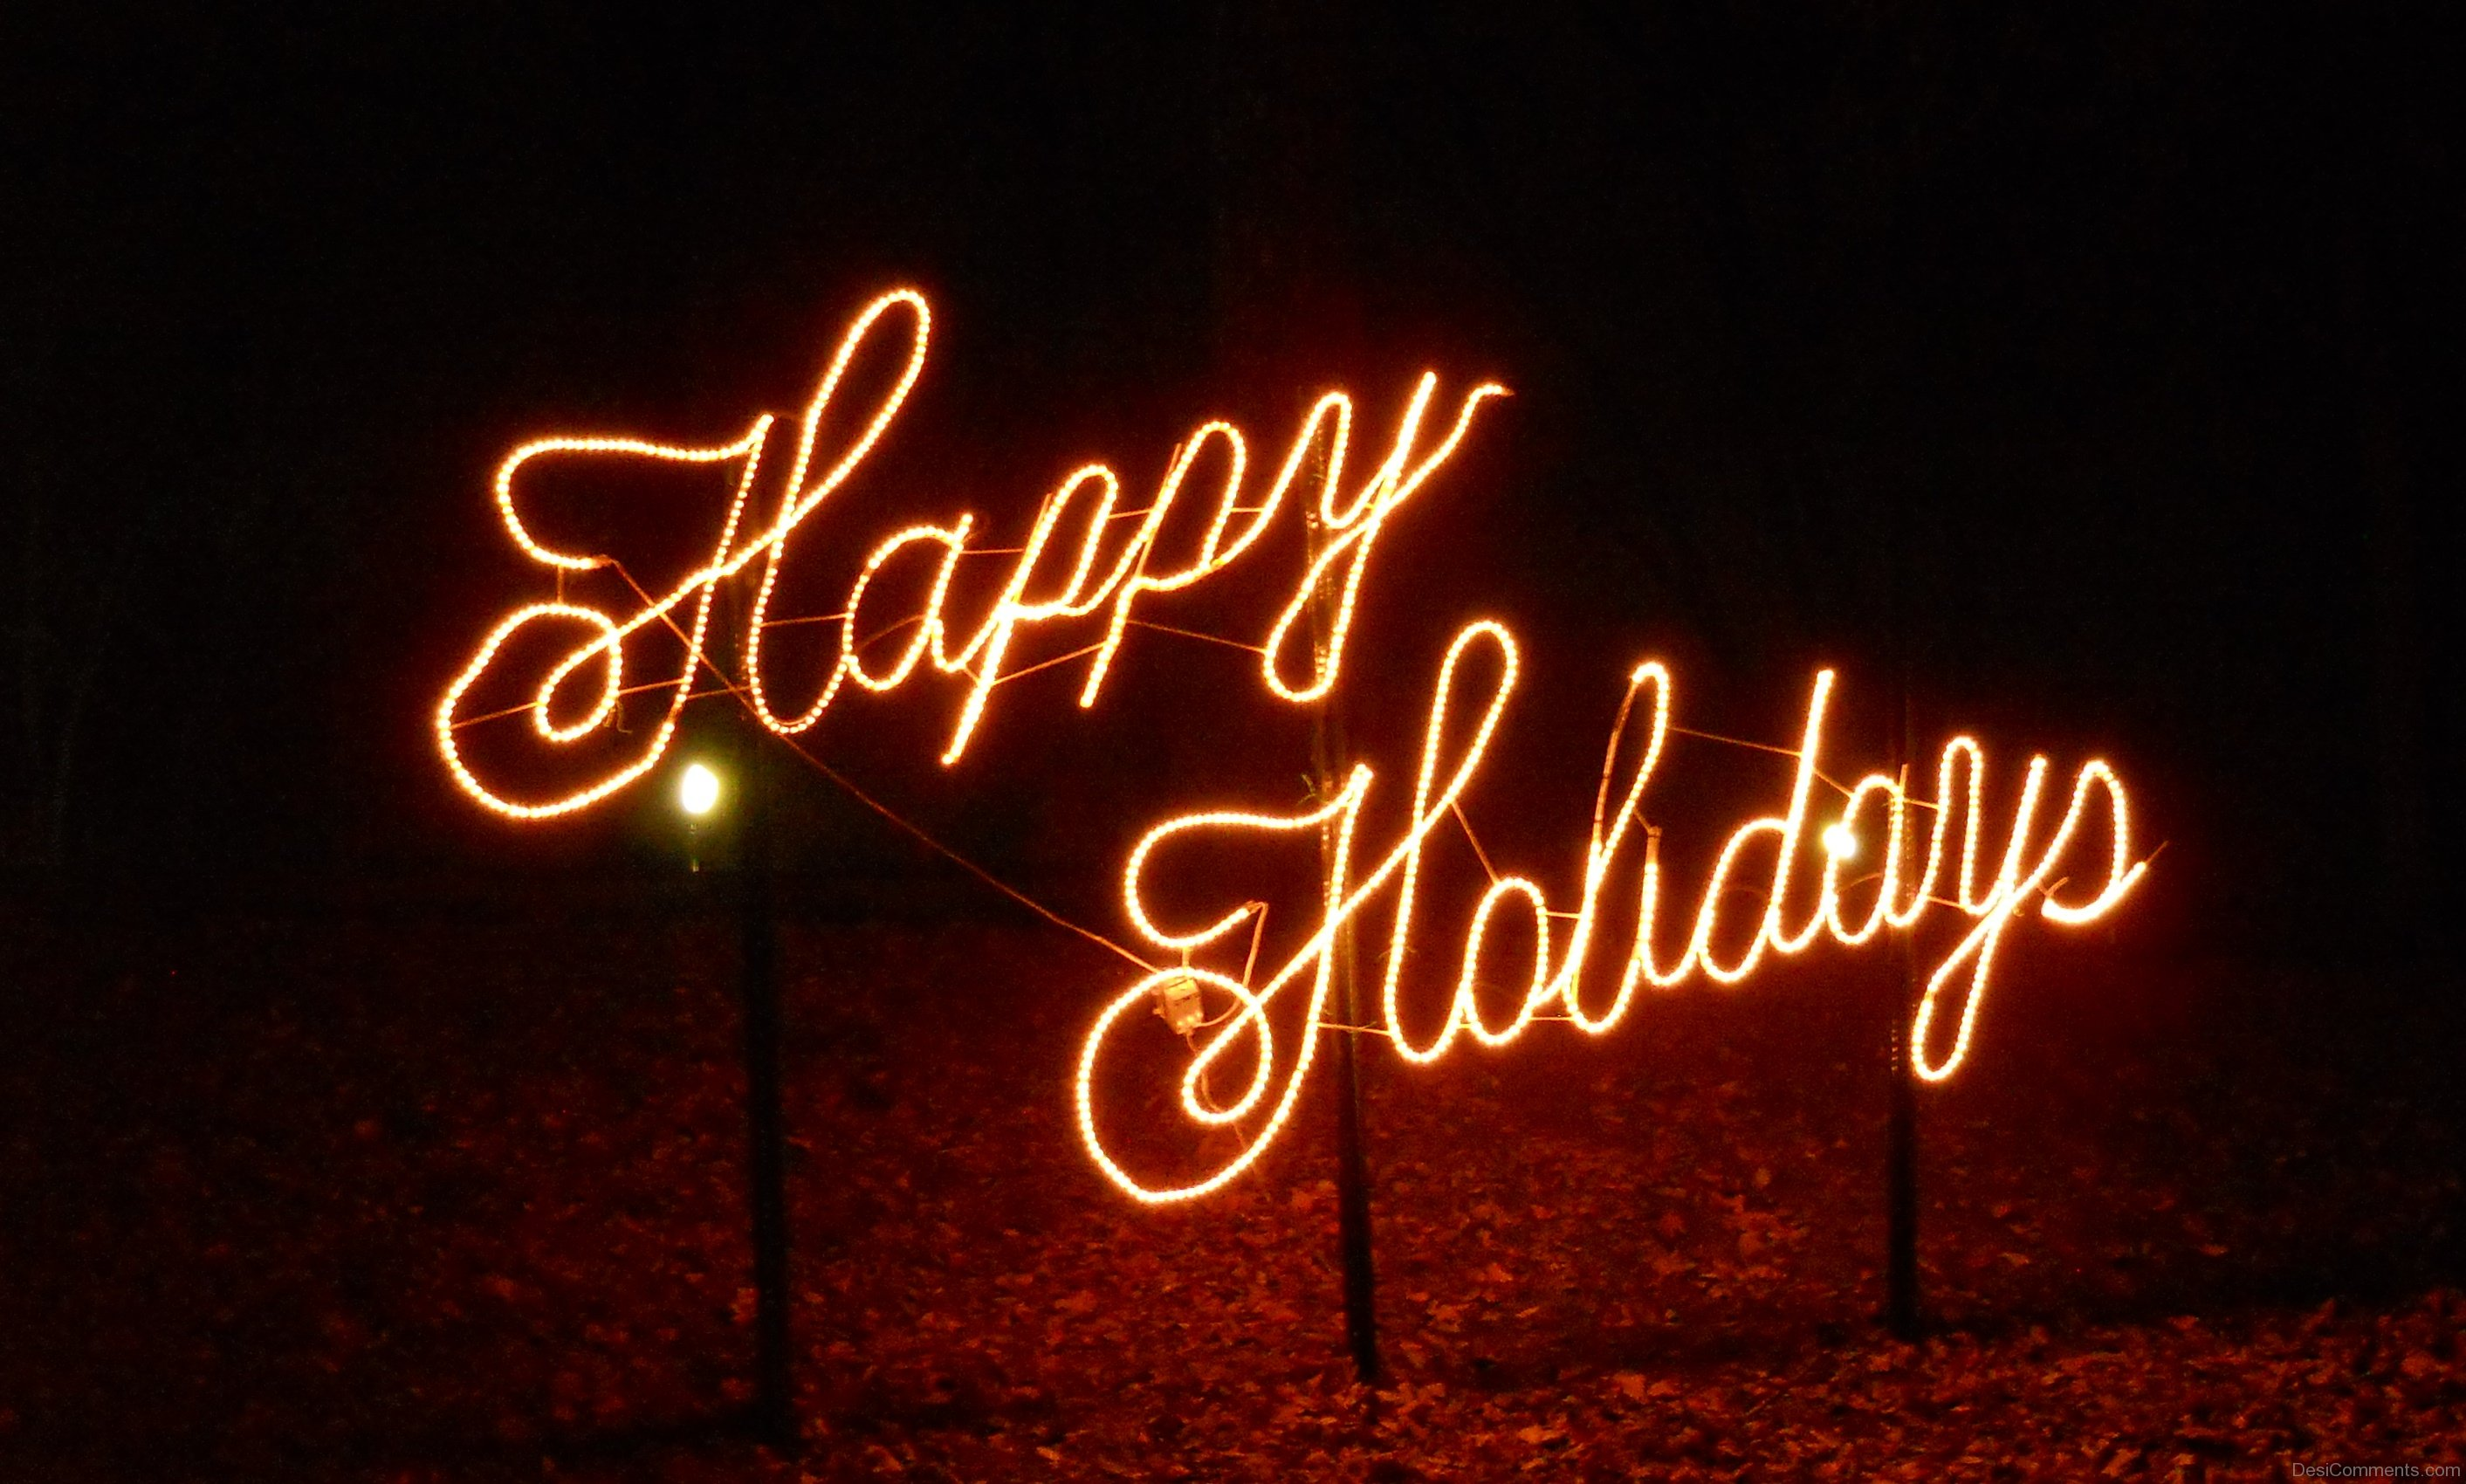 Happy Holidays Pictures Images Graphics Page 2